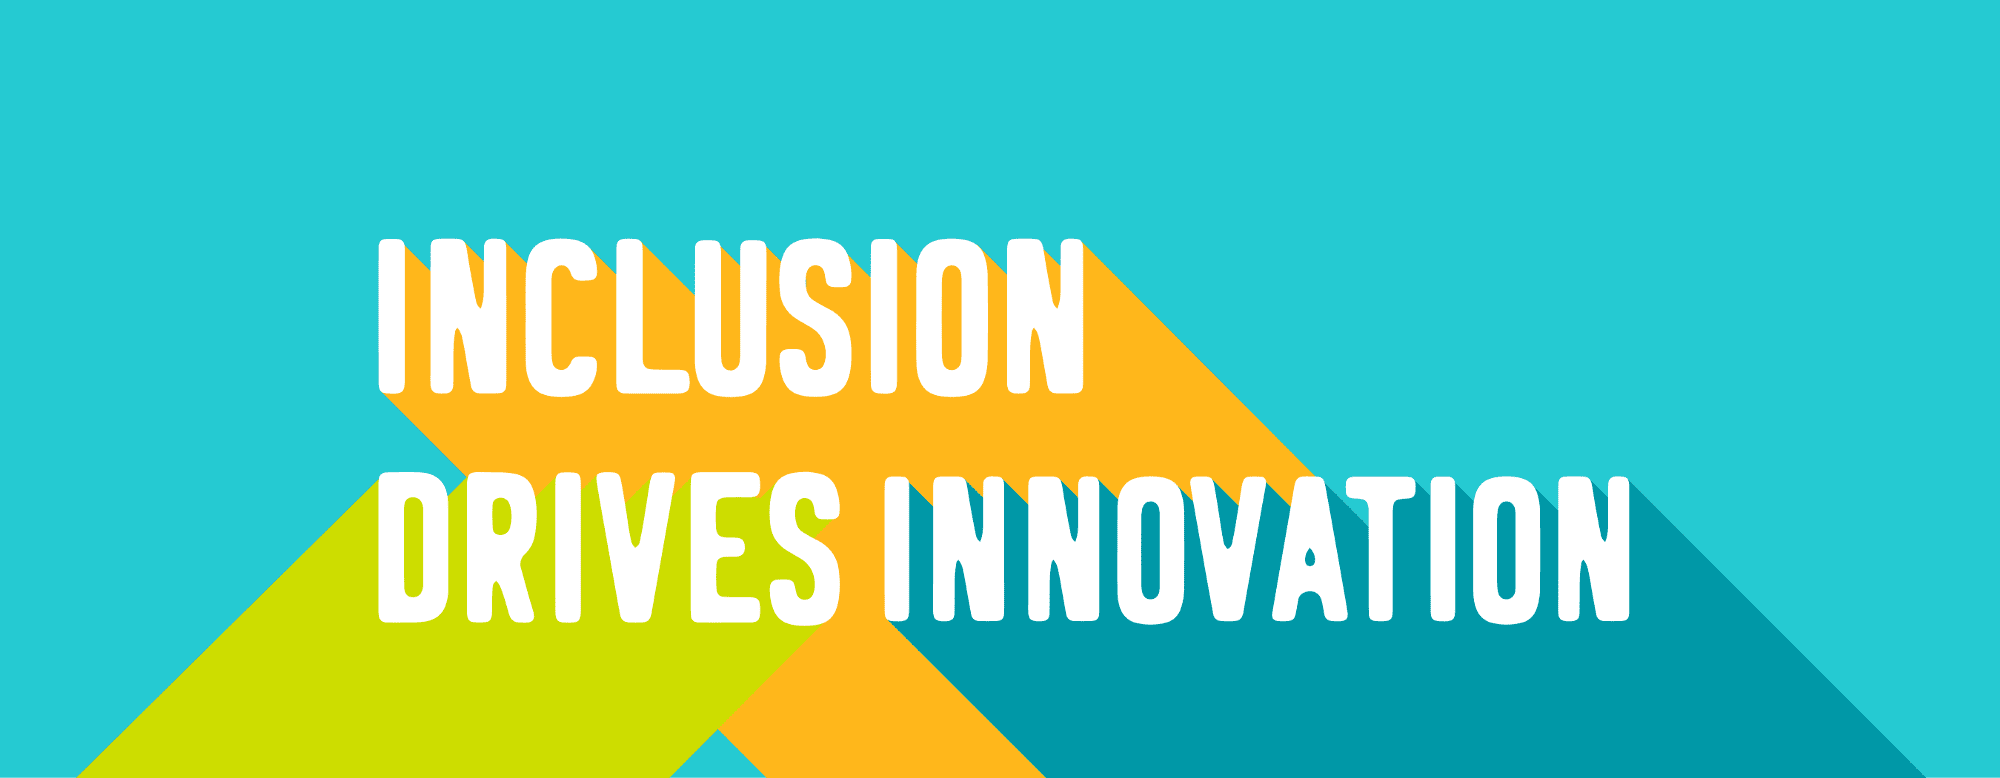 Inclusion Drive Innovation banner